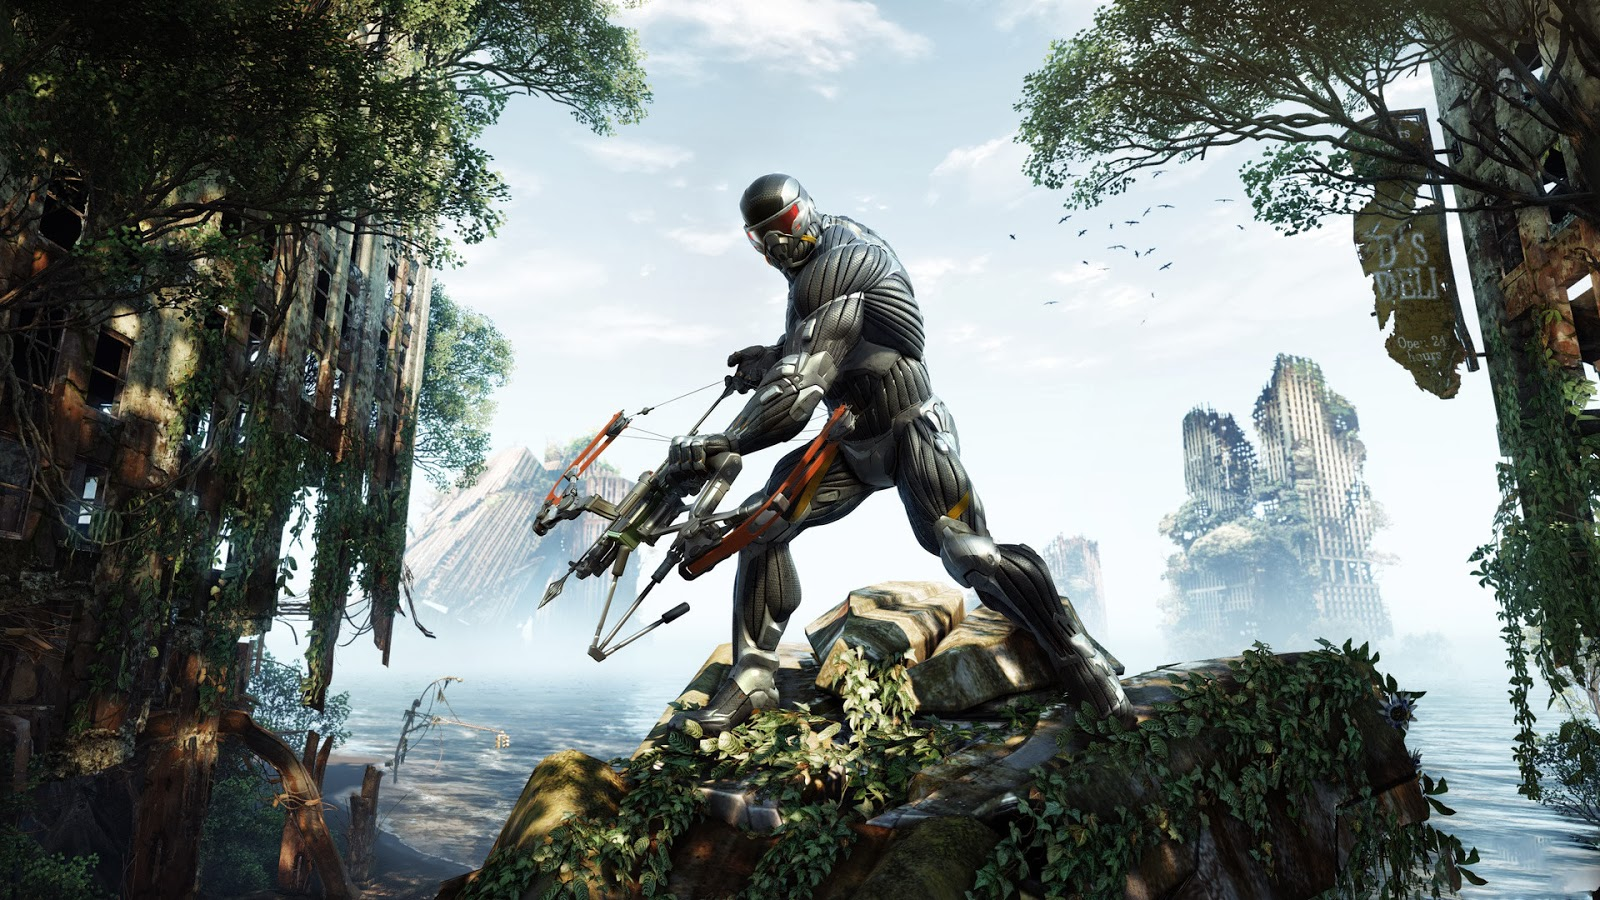 Crysis 3 download full game for pc [direct link] 2018 android.